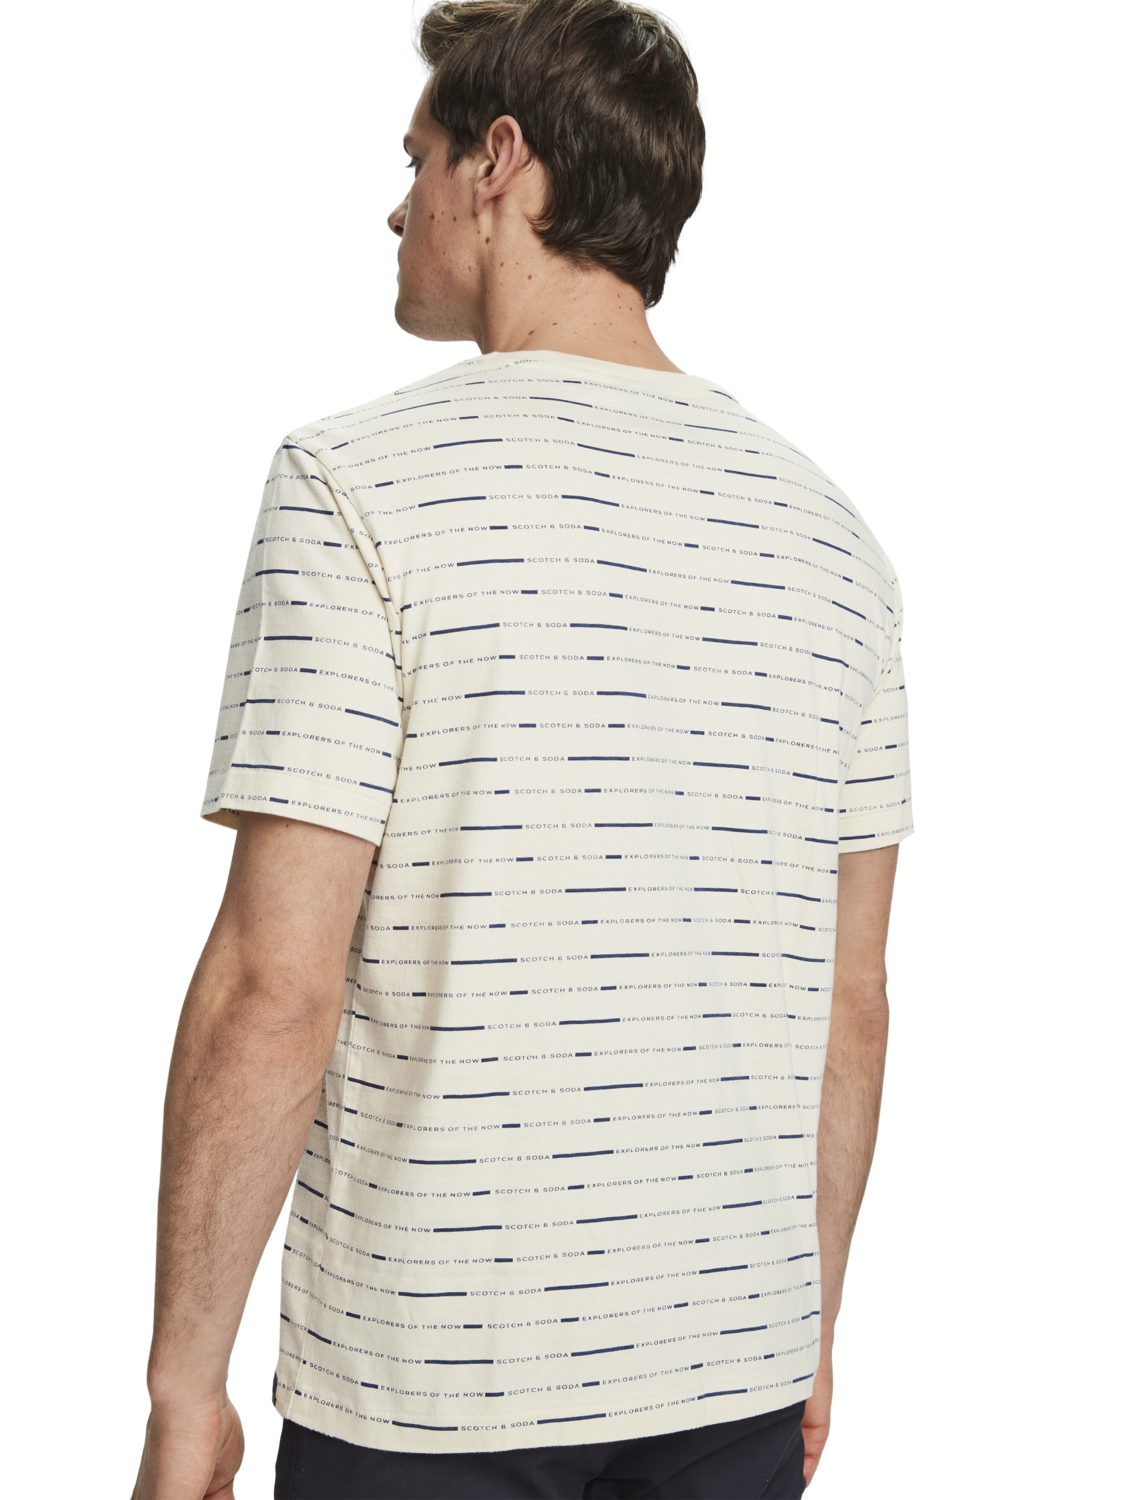 Herrar All-over-print sustainable cotton short sleeve t-shirt